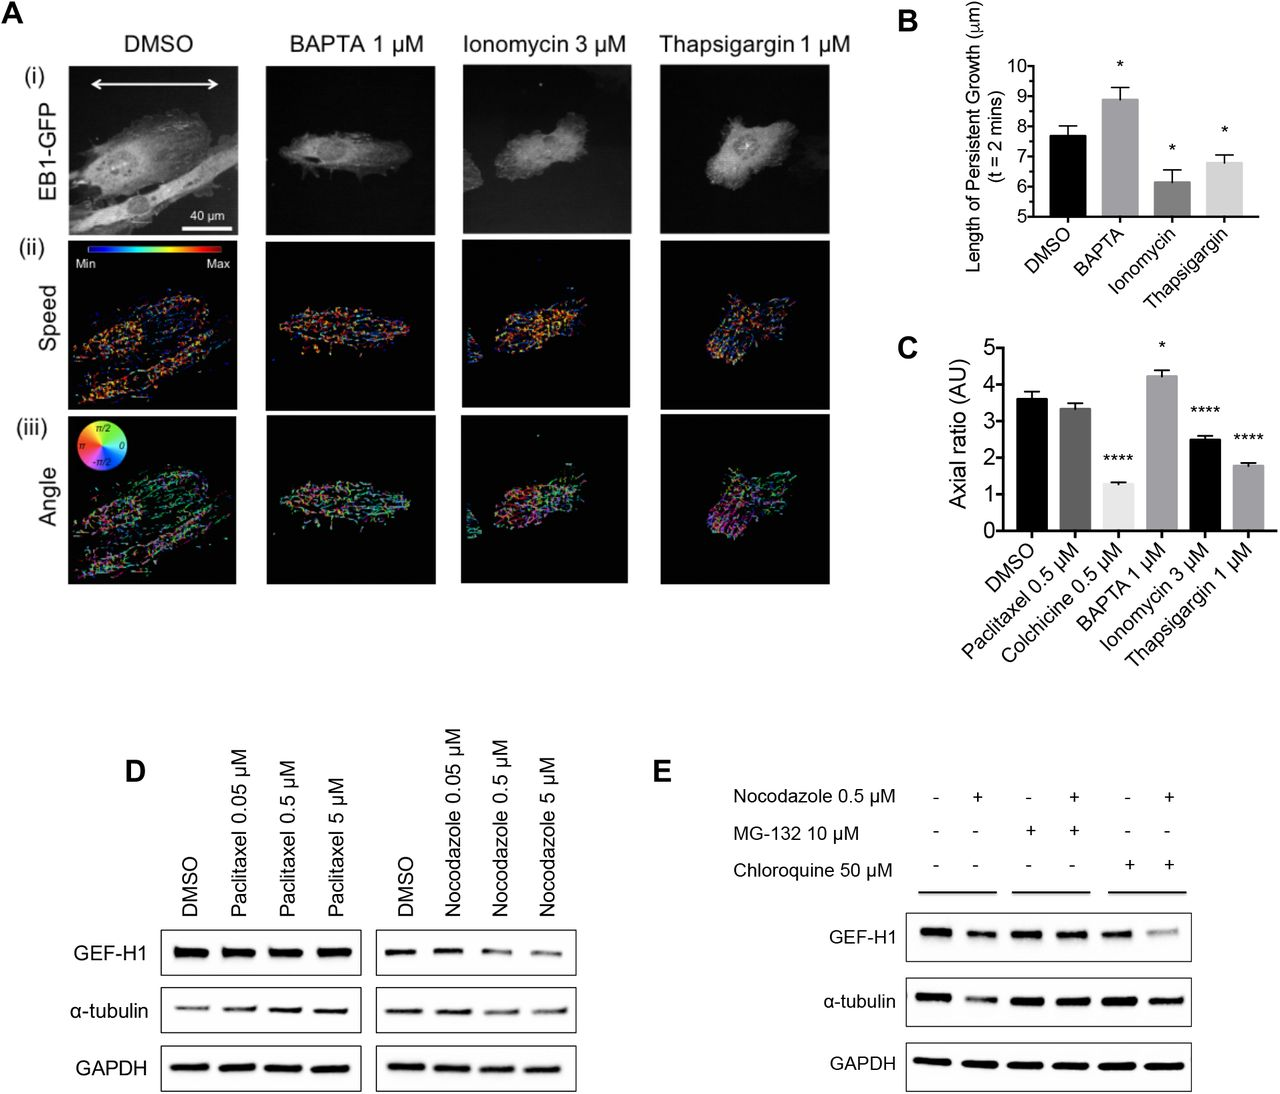 A persistent increase in intracellular Ca 2+ leads to MT depolymerization, causing proteosomal GEF-H1 degradation (A) (i) Representative fluorescent images of EB1-GFP-expressing HUVECs cultured on a nano-grooved patterned substratum following treatment by DMSO, <t>BAPTA</t> (1 μM), <t>ionomycin</t> (3 μM) and thapsigargin (1 μM) for 15 hours. The white arrow indicates the direction of the grooves and ridges in the pattern. Scale bar: 40 μm. Results of an automated tracking analysis representing (ii) speed and (iii) angle of trajectories of EB1-GFP clusters from images taken every 2 seconds for 2 minutes. (B) Comparison of the length of persistent MT growth over 2 minutes for the conditions of treatment by DMSO, BAPTA (1 μM) (* P = 0.0401), ionomycin (3 μM) (* P = 0.0113) and thapsigargin (1 μM) (* P = 0.0447). Data were analyzed by unpaired two-tailed t test with error bar representing s.e.m. (C) Comparison of axial ratios of HUVECs under the conditions of treatment with DMSO (n = 106 cells), paclitaxel (0.5 μM) (n = 140 cells), colchicine (0.5 μM) (n = 132 cells), BAPTA (1 μM) (n = 135 cells), ionomycin (3 μM) (n = 130 cells) and thapsigargin (1 μM) (n = 113 cells). Data were analyzed by one-way ANOVA with error bar representing s.e.m. (* P = 0.0116, **** P